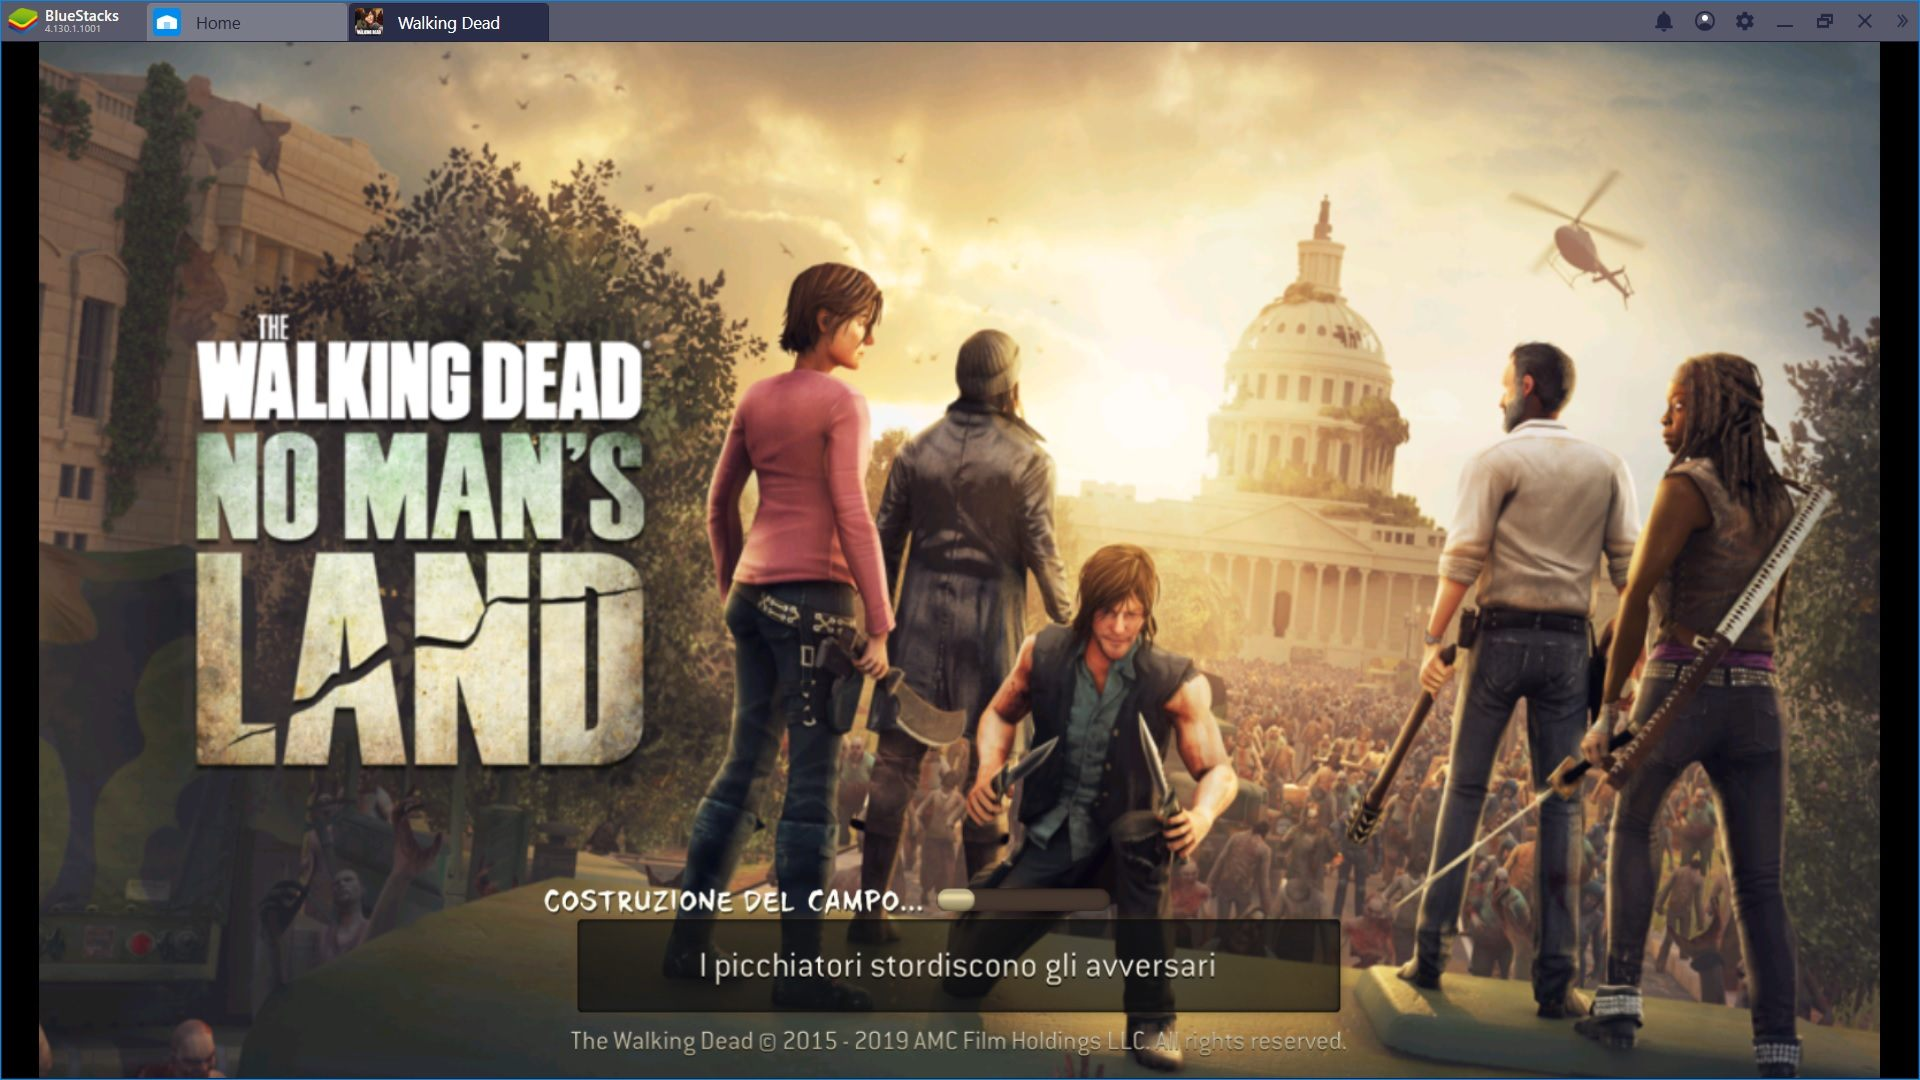 Installa The Walking Dead: No Man's Land e sfrutta i vantaggi di Bluestacks 4